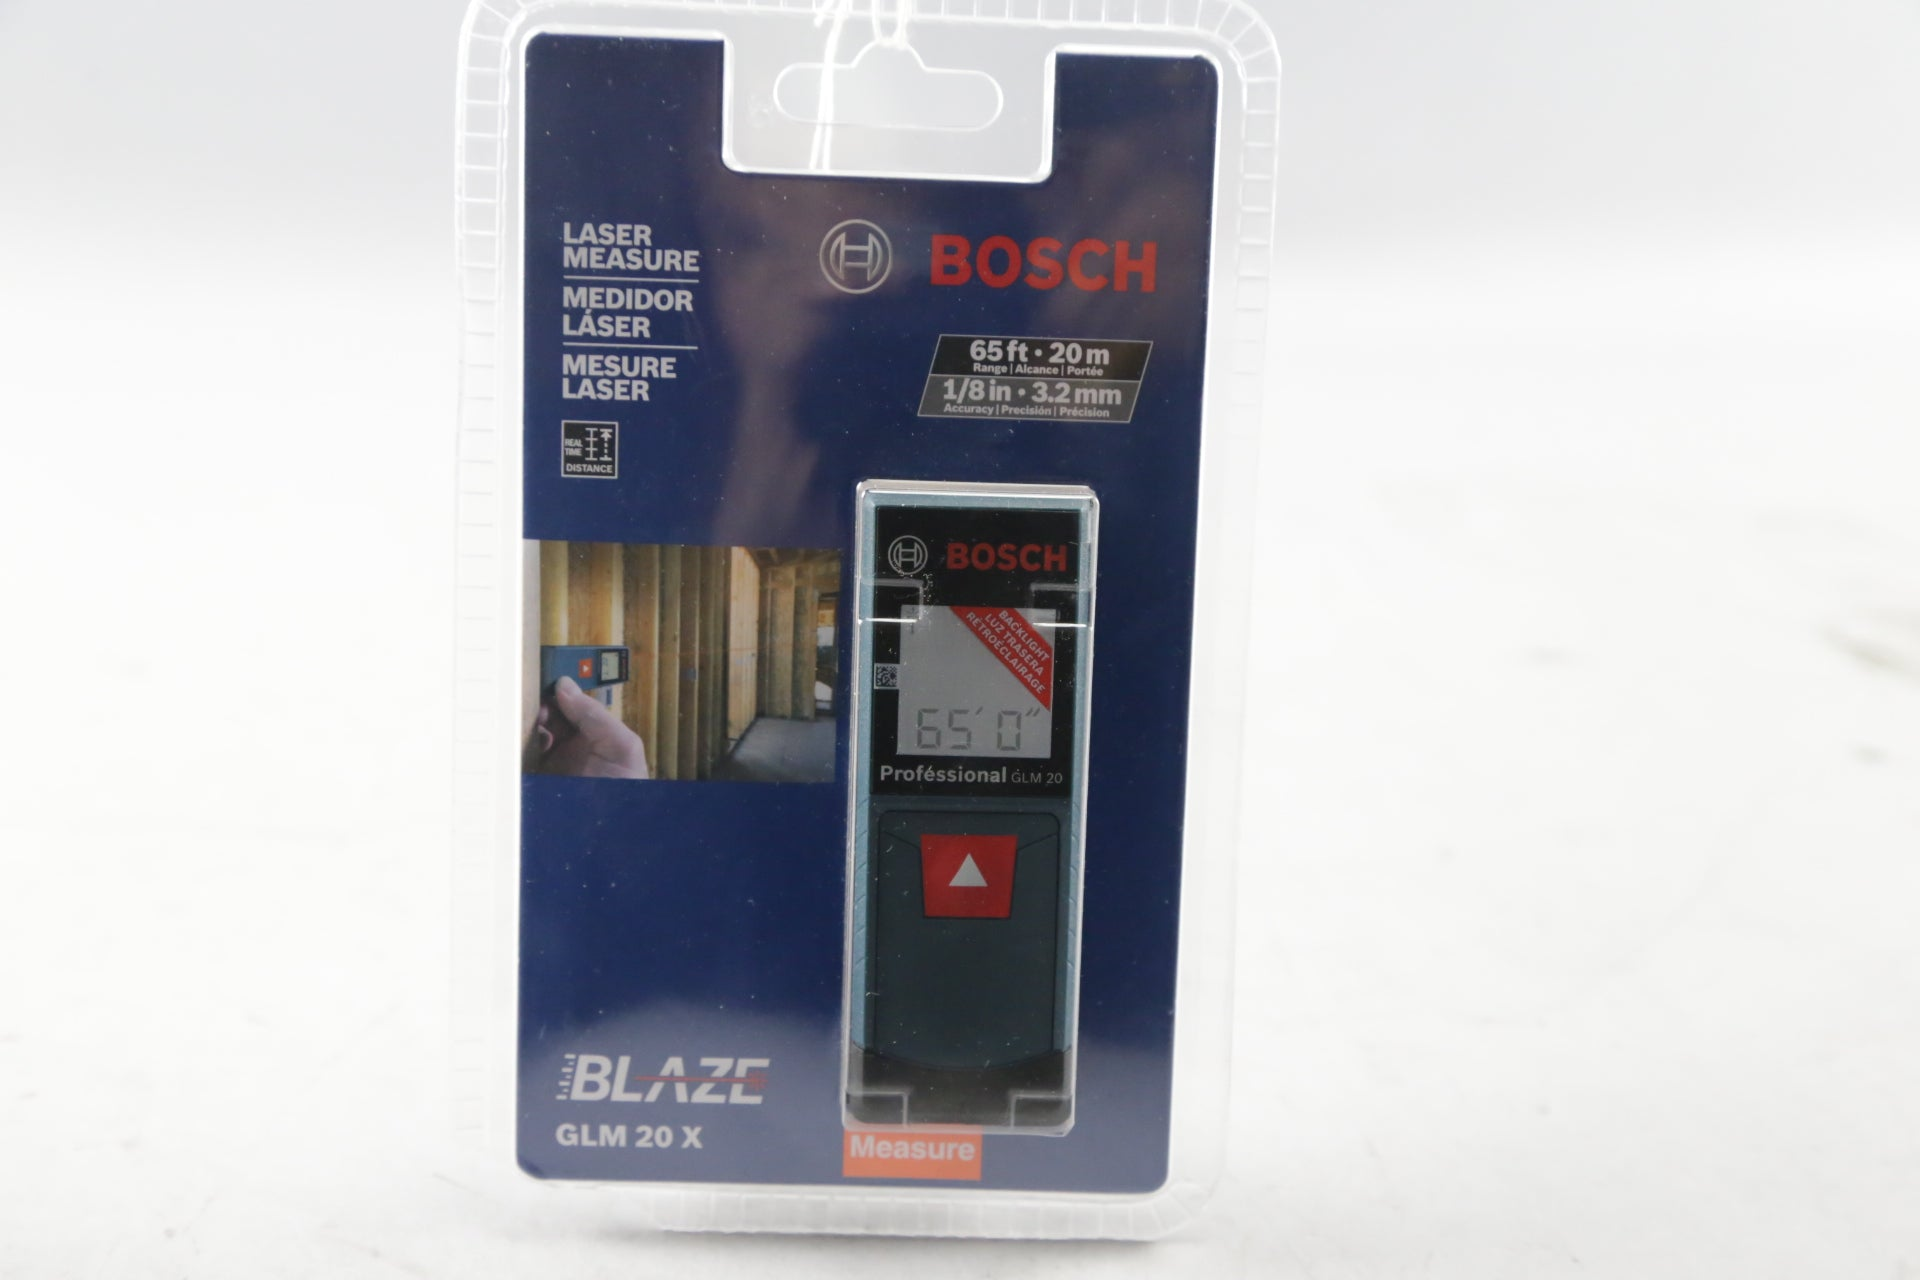 BOSCH BLAZE GLM 20 X 65ft LASER MEASURE NEW SEALED